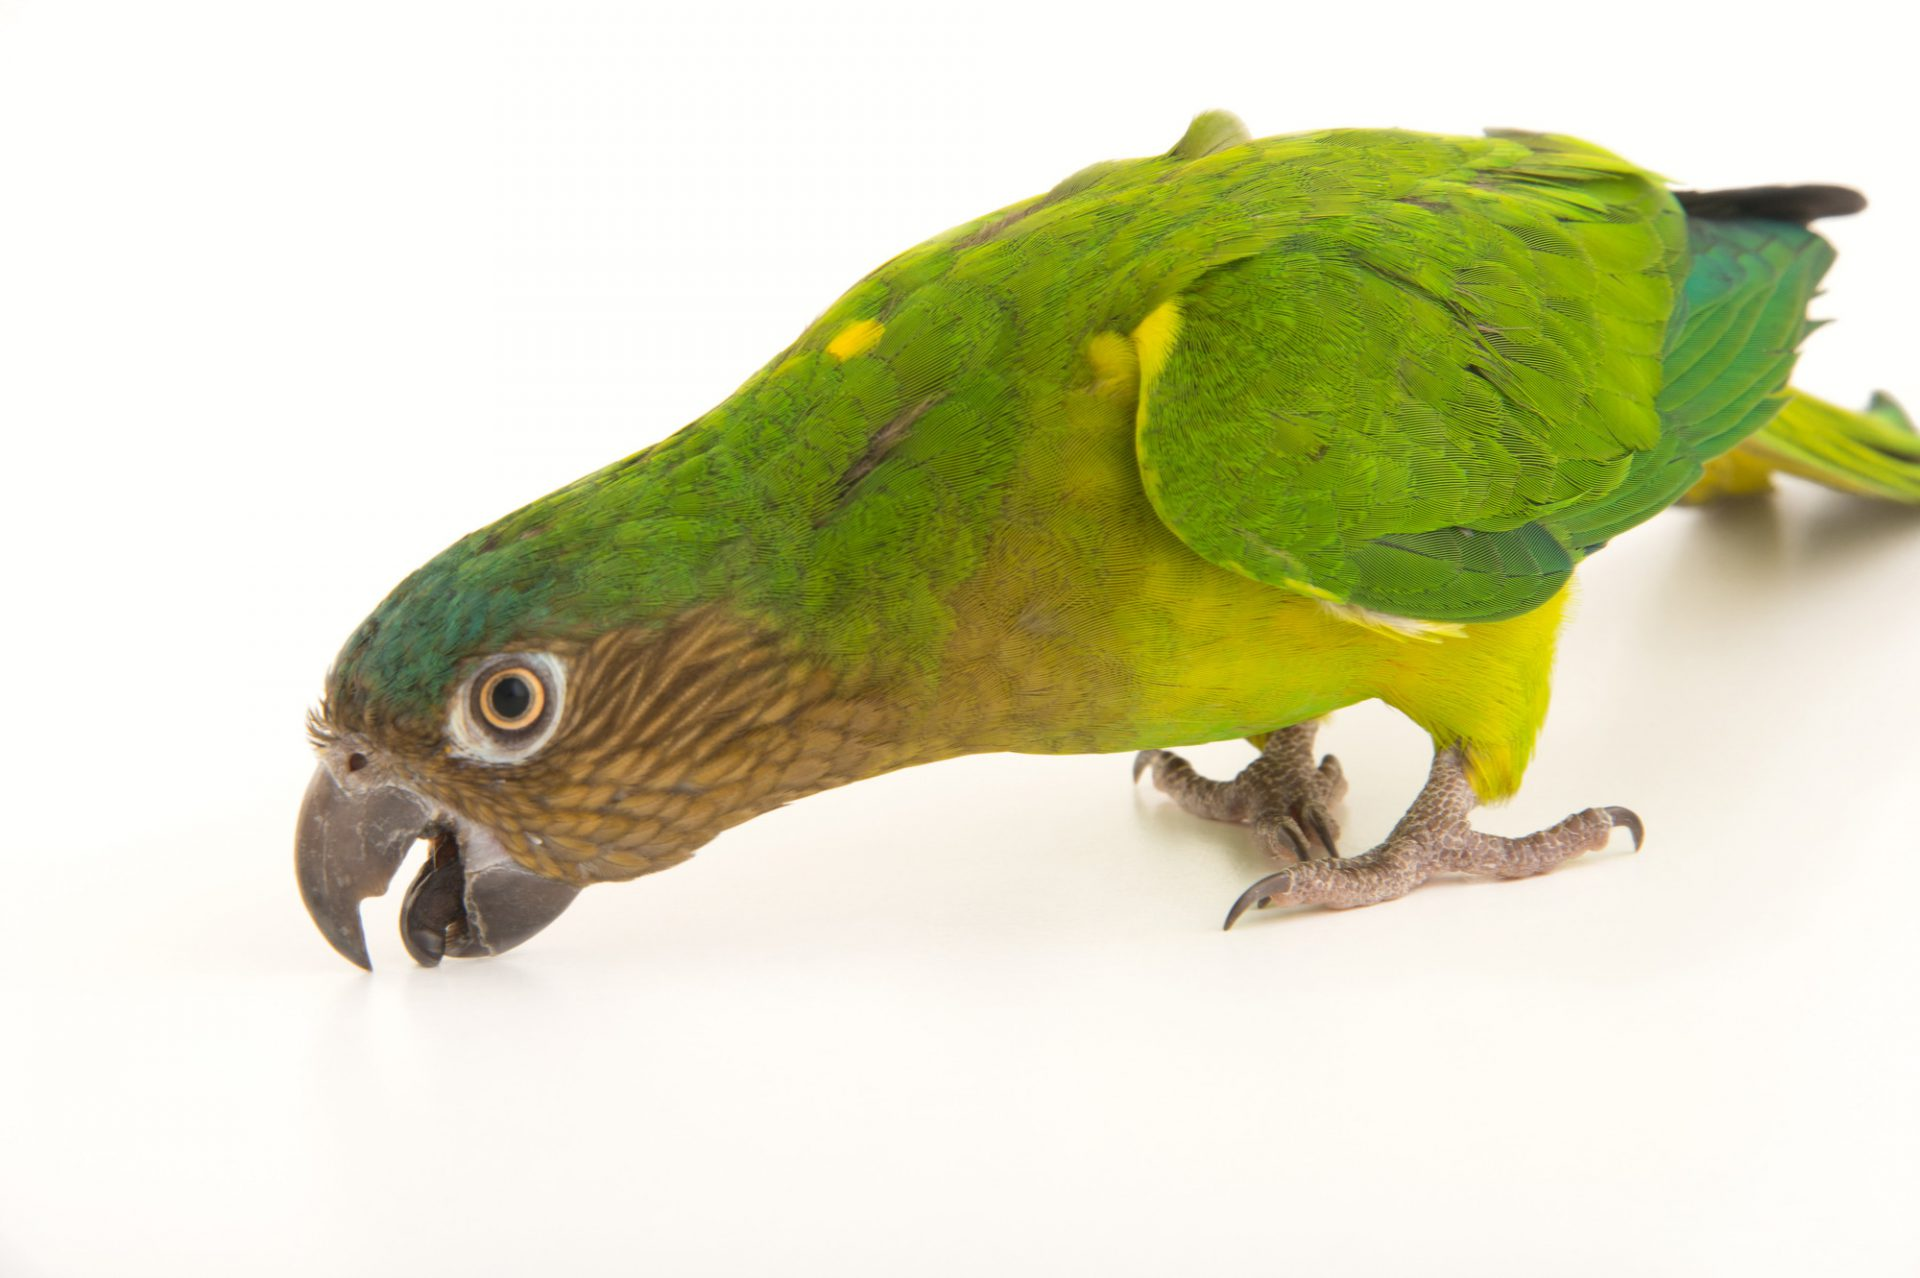 A brown-throated conure (Eupsittula pertinax aeruginosa) at the National Aviary of Colombia.